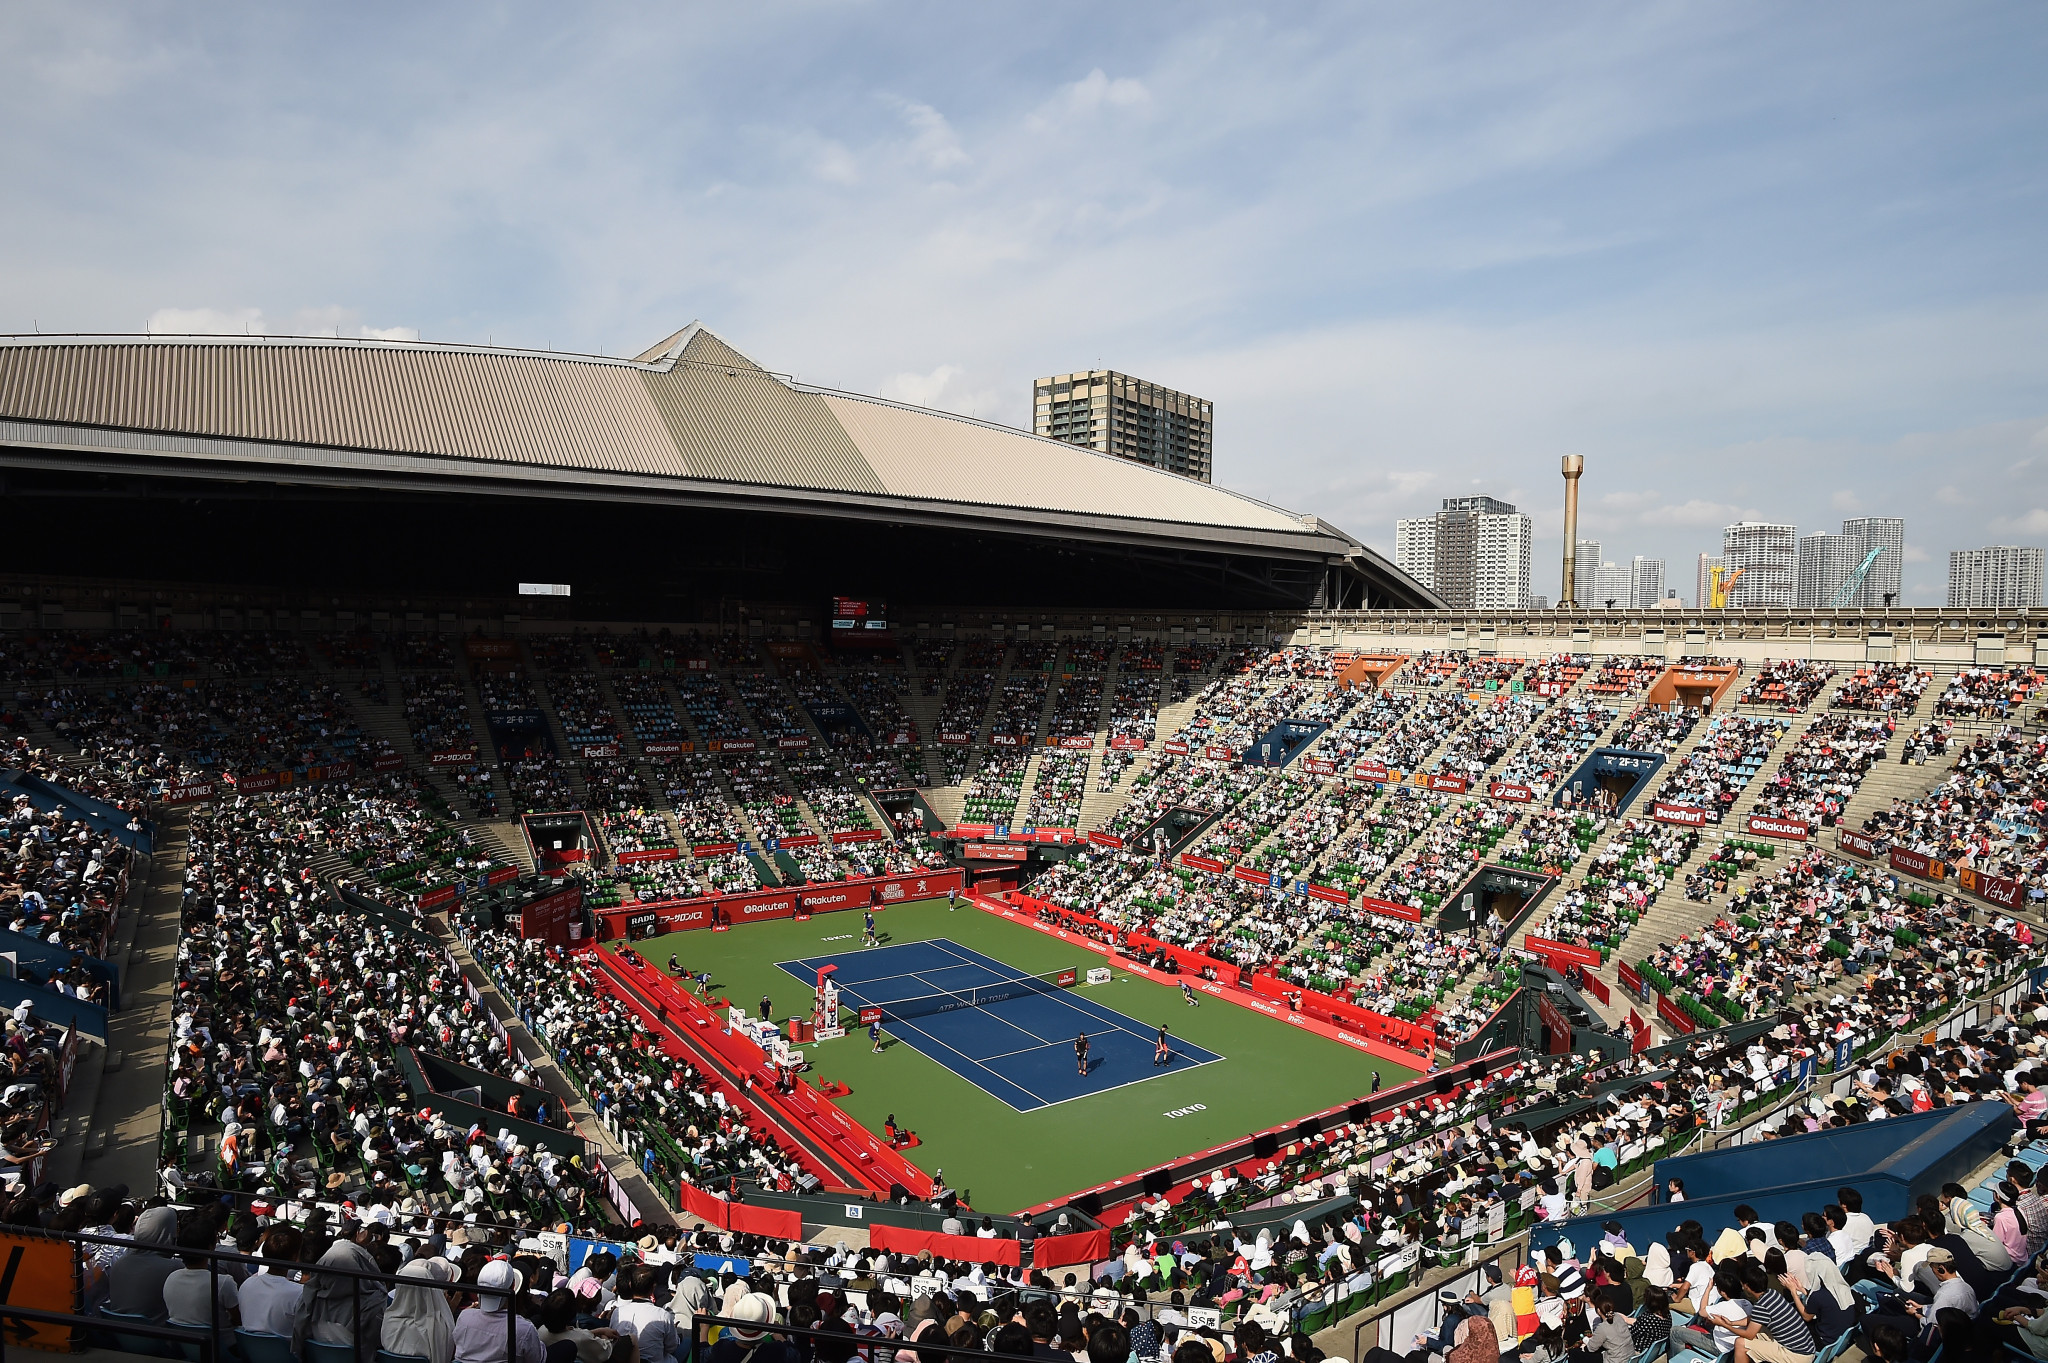 ITF announce men's Olympic final at Tokyo 2020 to be reduced to best-of-three sets